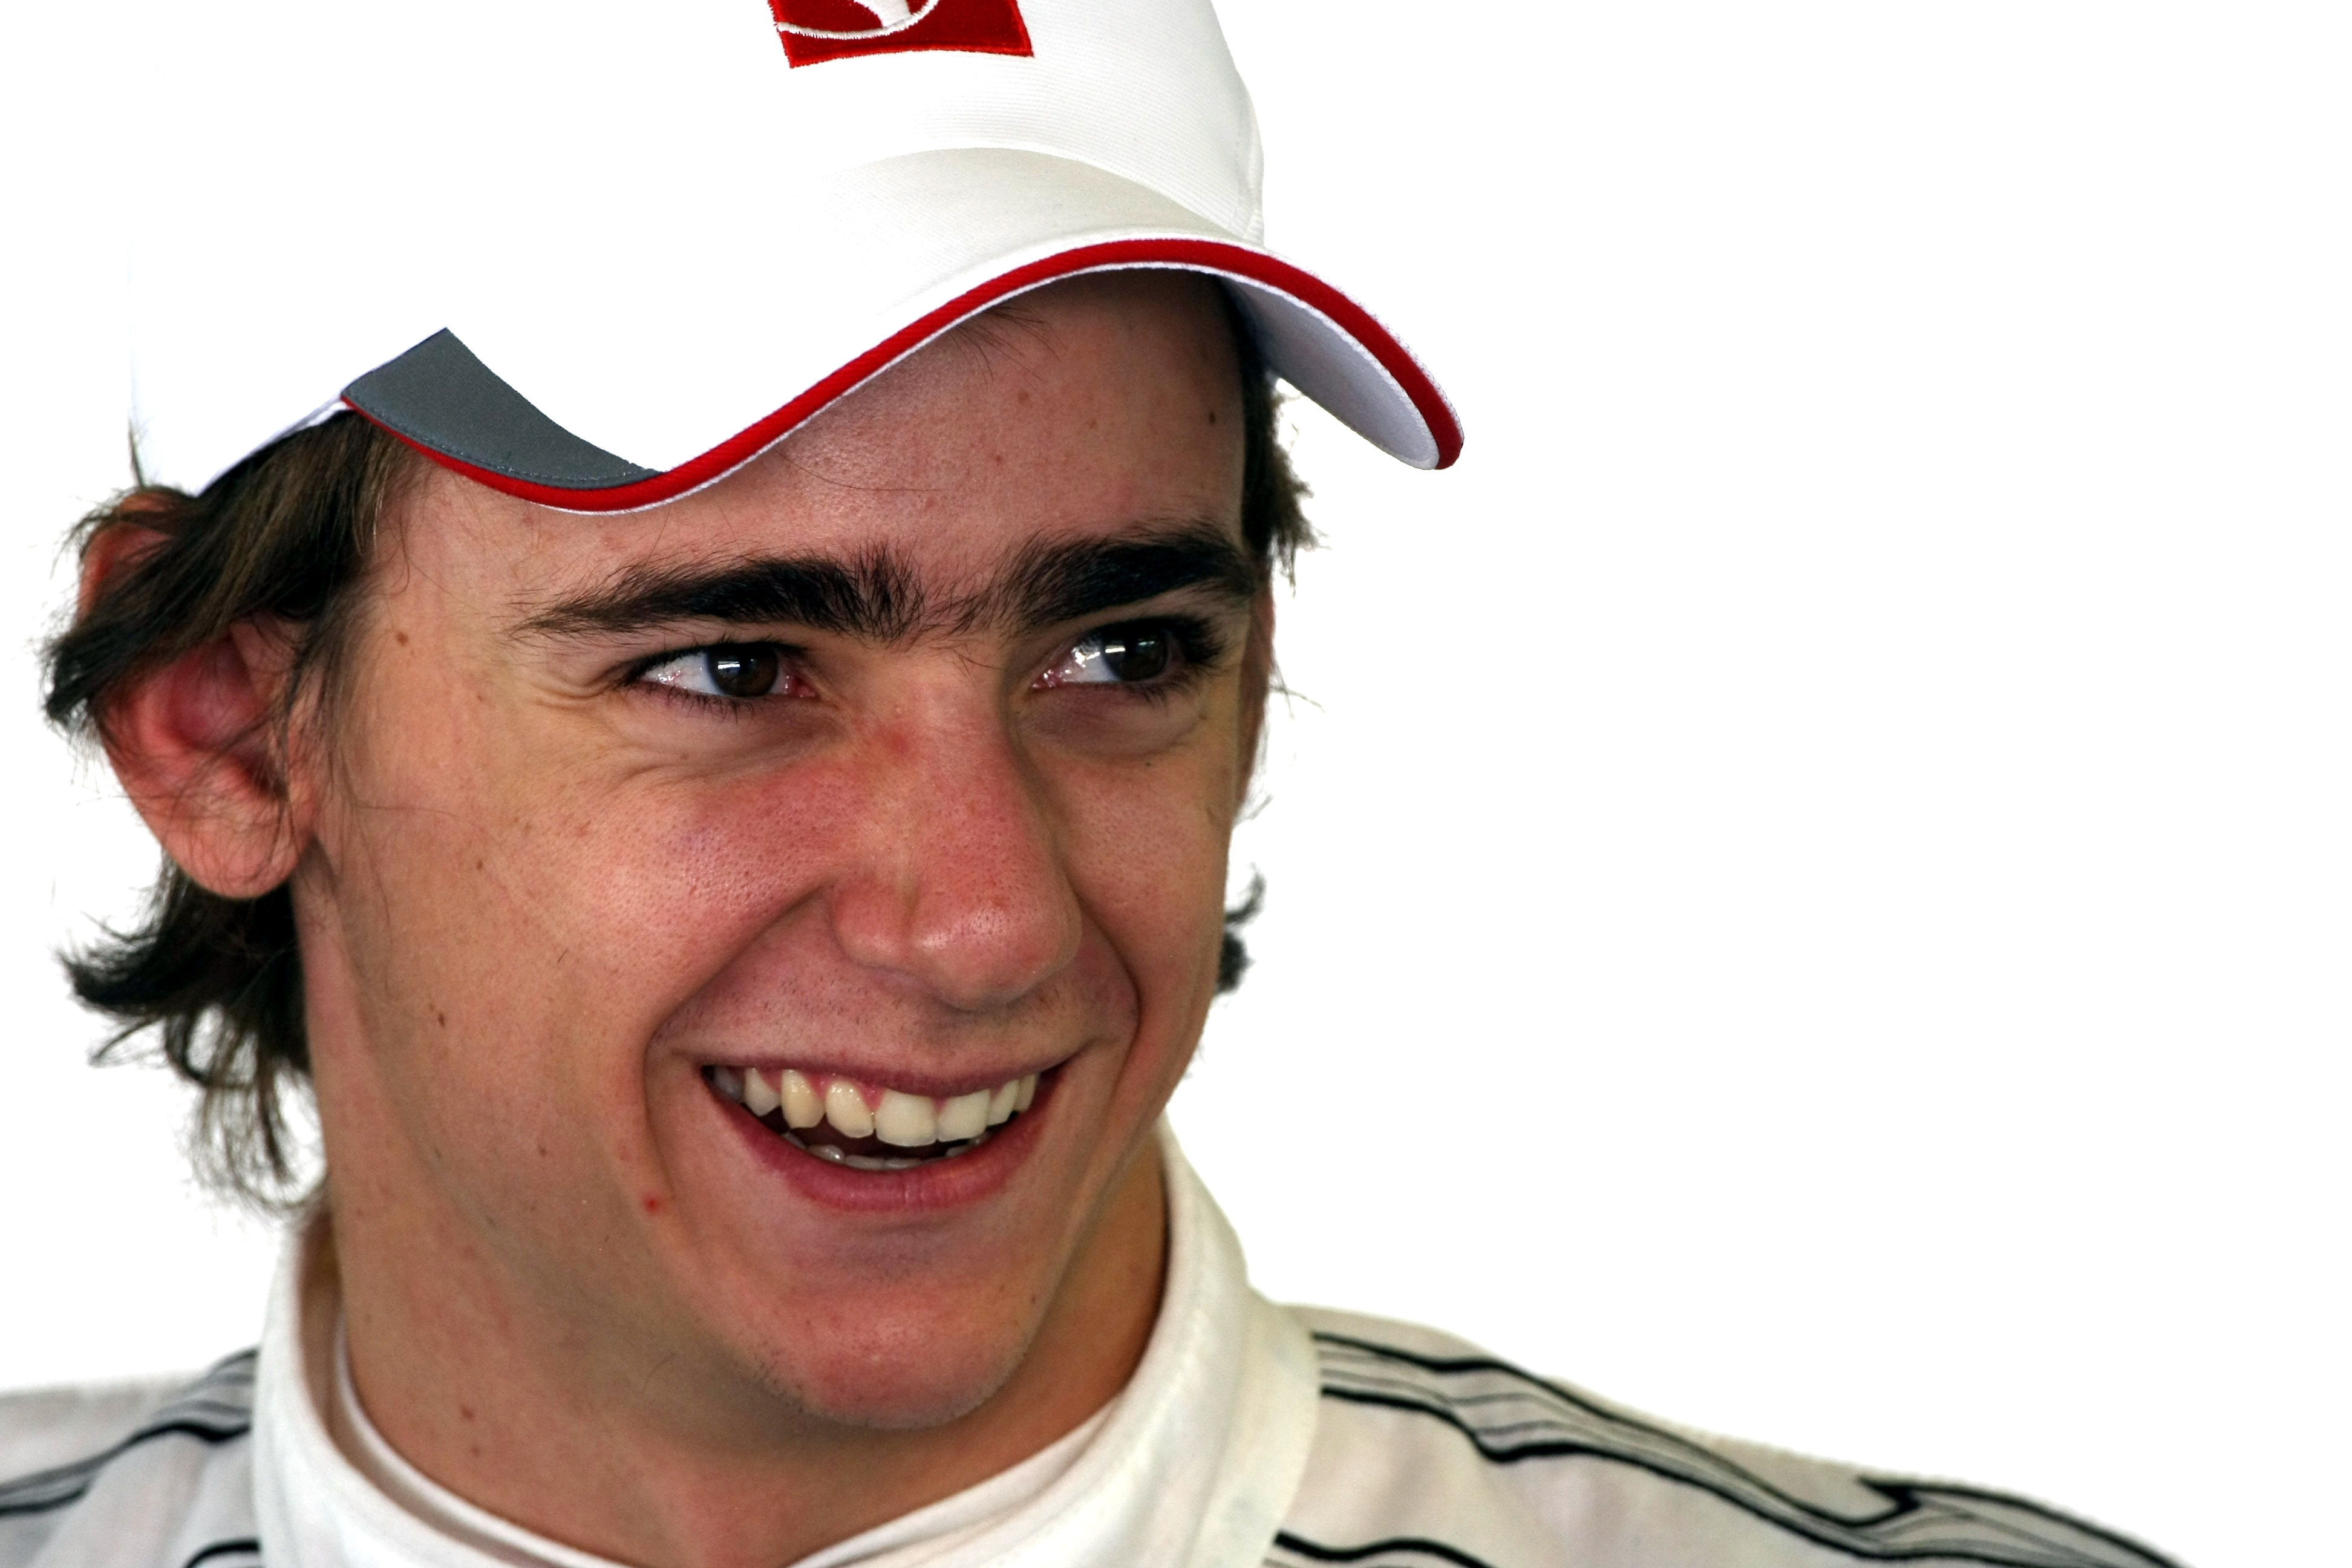 ABU DHABI, UNITED ARAB EMIRATES - NOVEMBER 16:  Esteban Gutierrez of Mexico and Sauber F1 Team during the Young Driver Testing at the Yas Marina Circuit on November 16, 2010 in Abu Dhabi, United Arab Emirates.  (Photo by Andrew Hone/Getty Images)